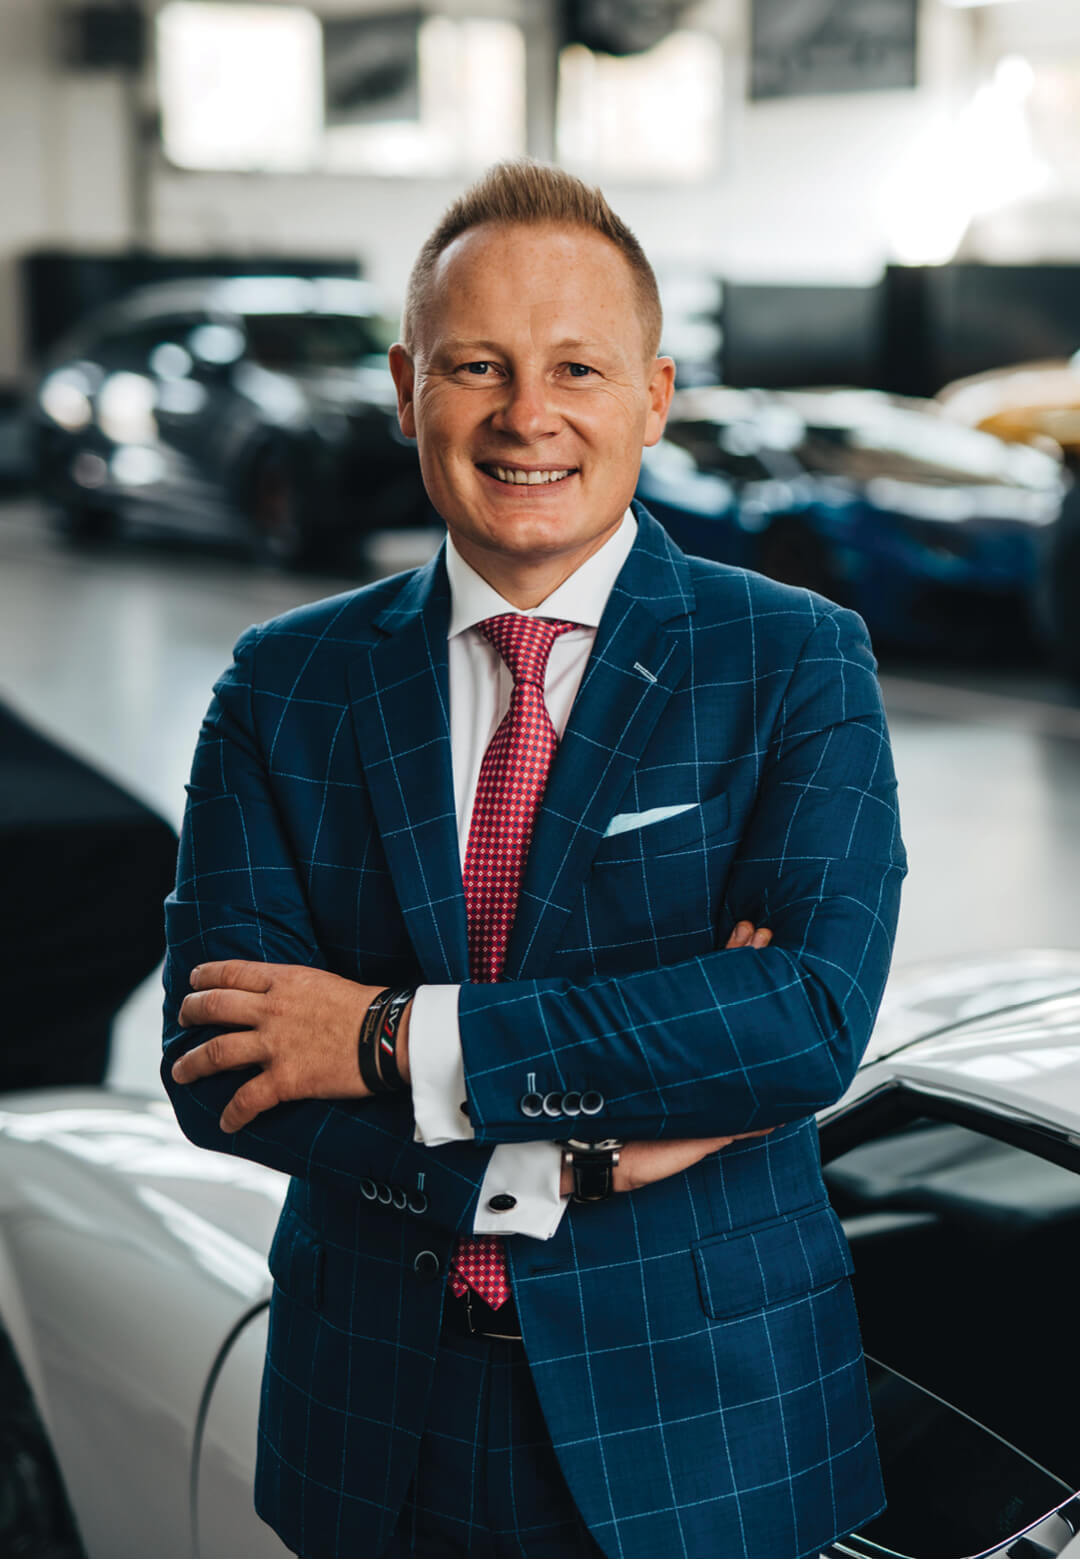 Gautam Sen and Avik Chattopadhyay in conversation with Mitja Borkert, Head of Design at Automobili Lamborghini as well as Director of its Centro Stile (design center) | Freewheeling with Mitja Borkert | STIRworld